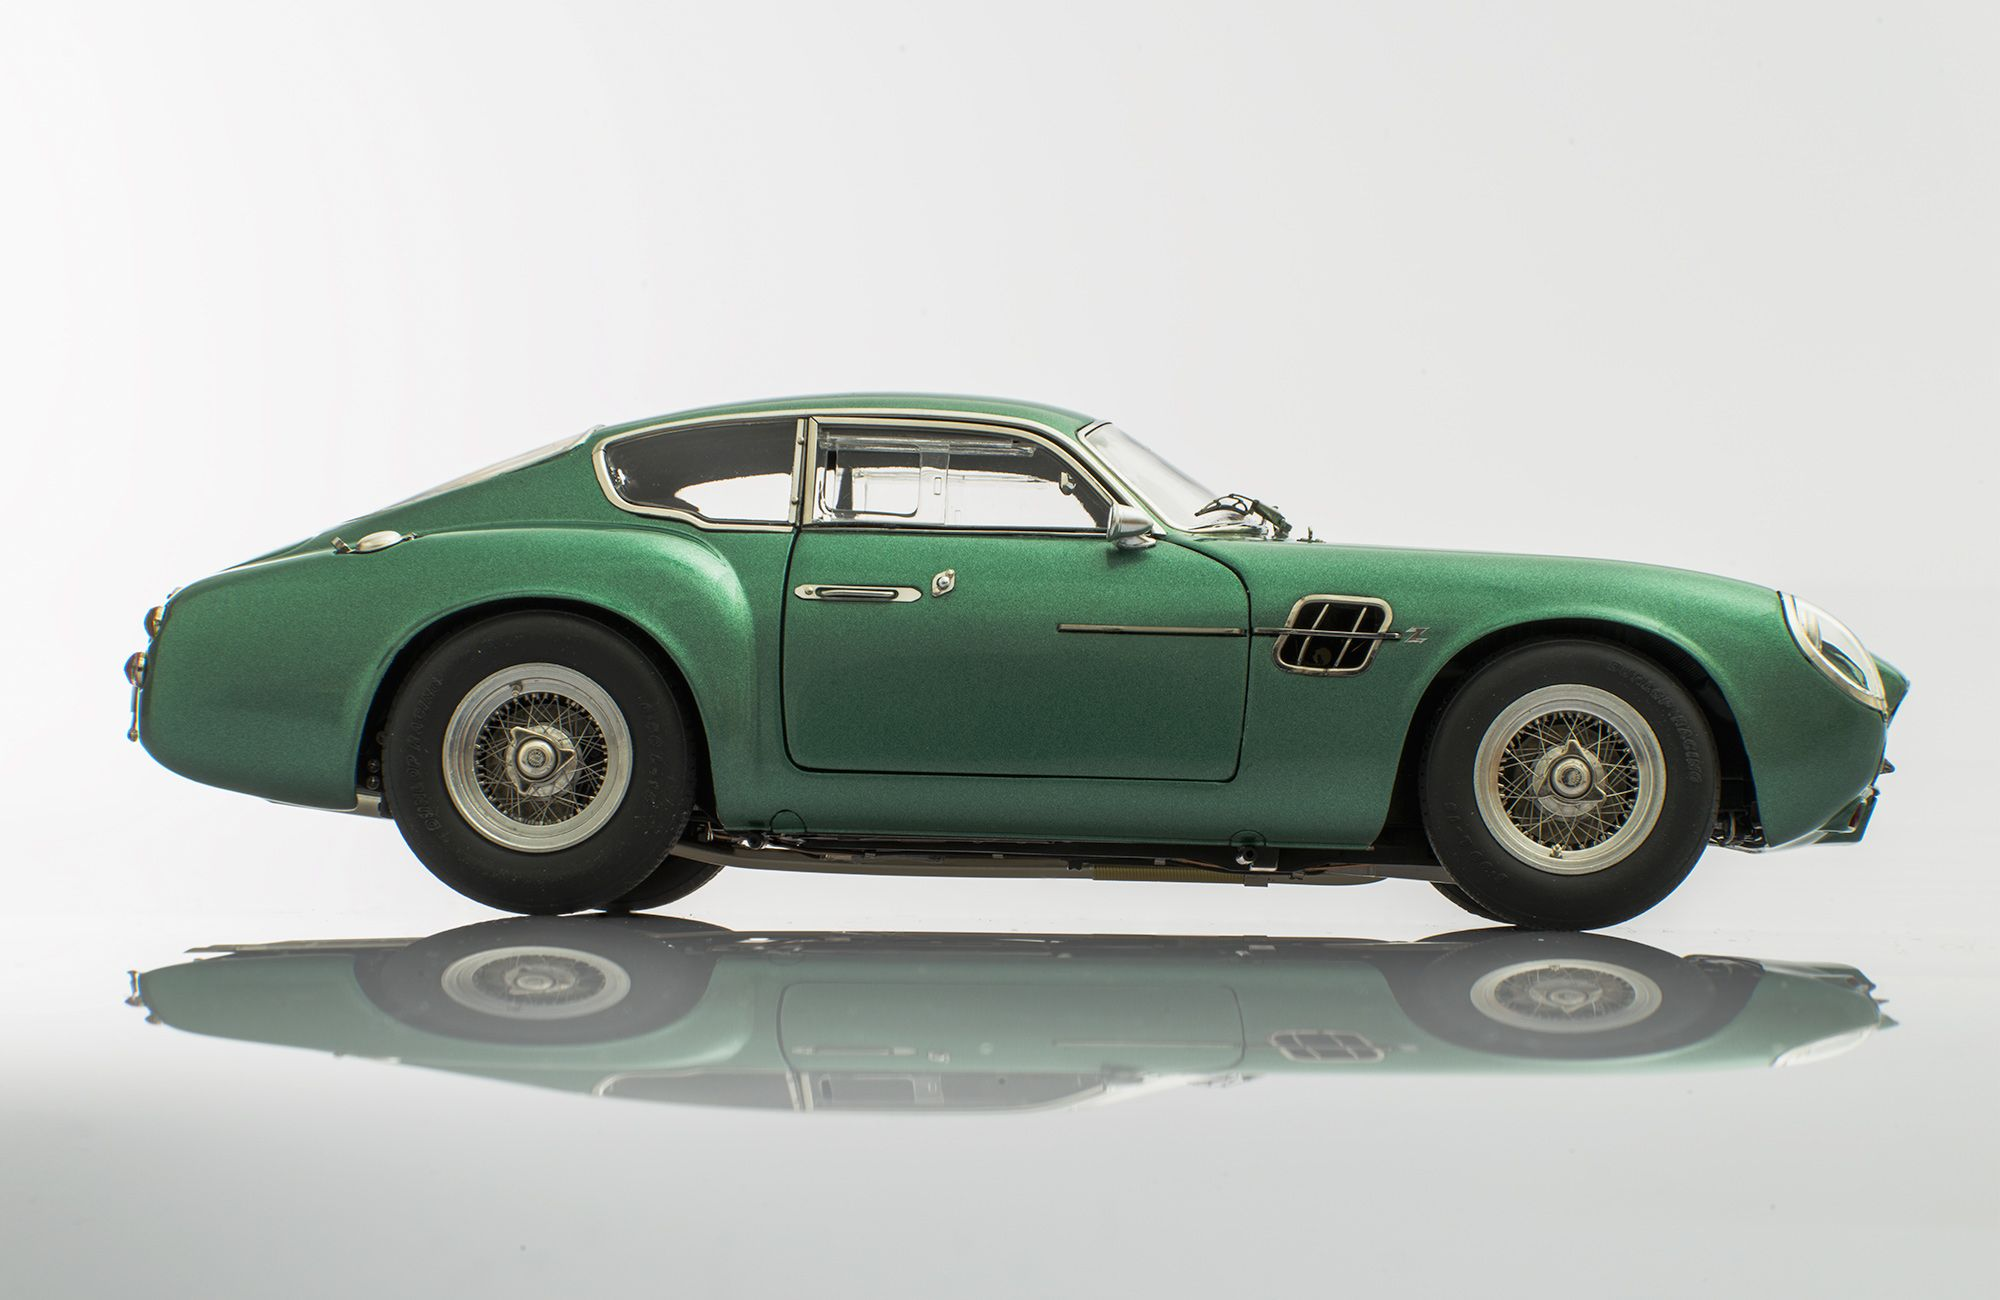 Aston Martin Db4 Gt Zagato By Cmc Model Cars Is A Gorgeously